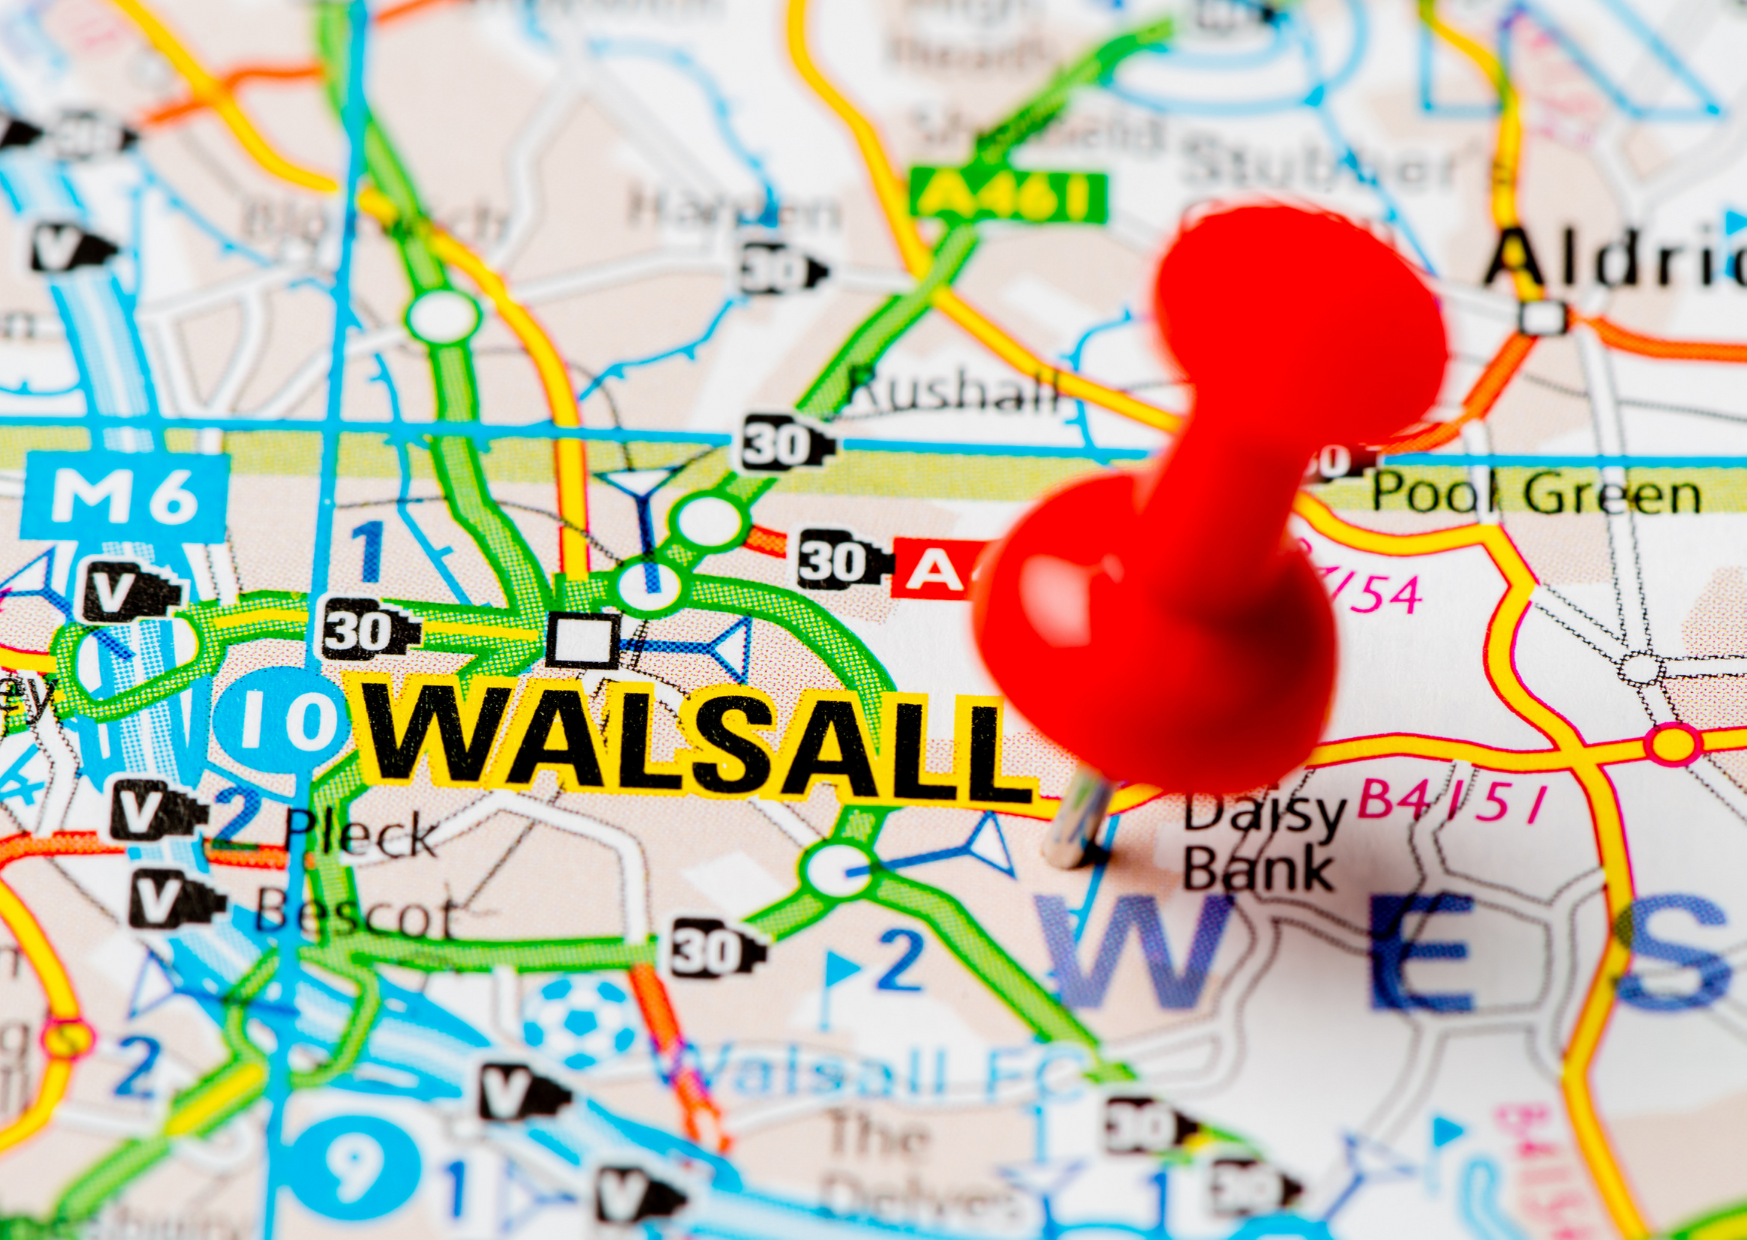 Walsall on a map